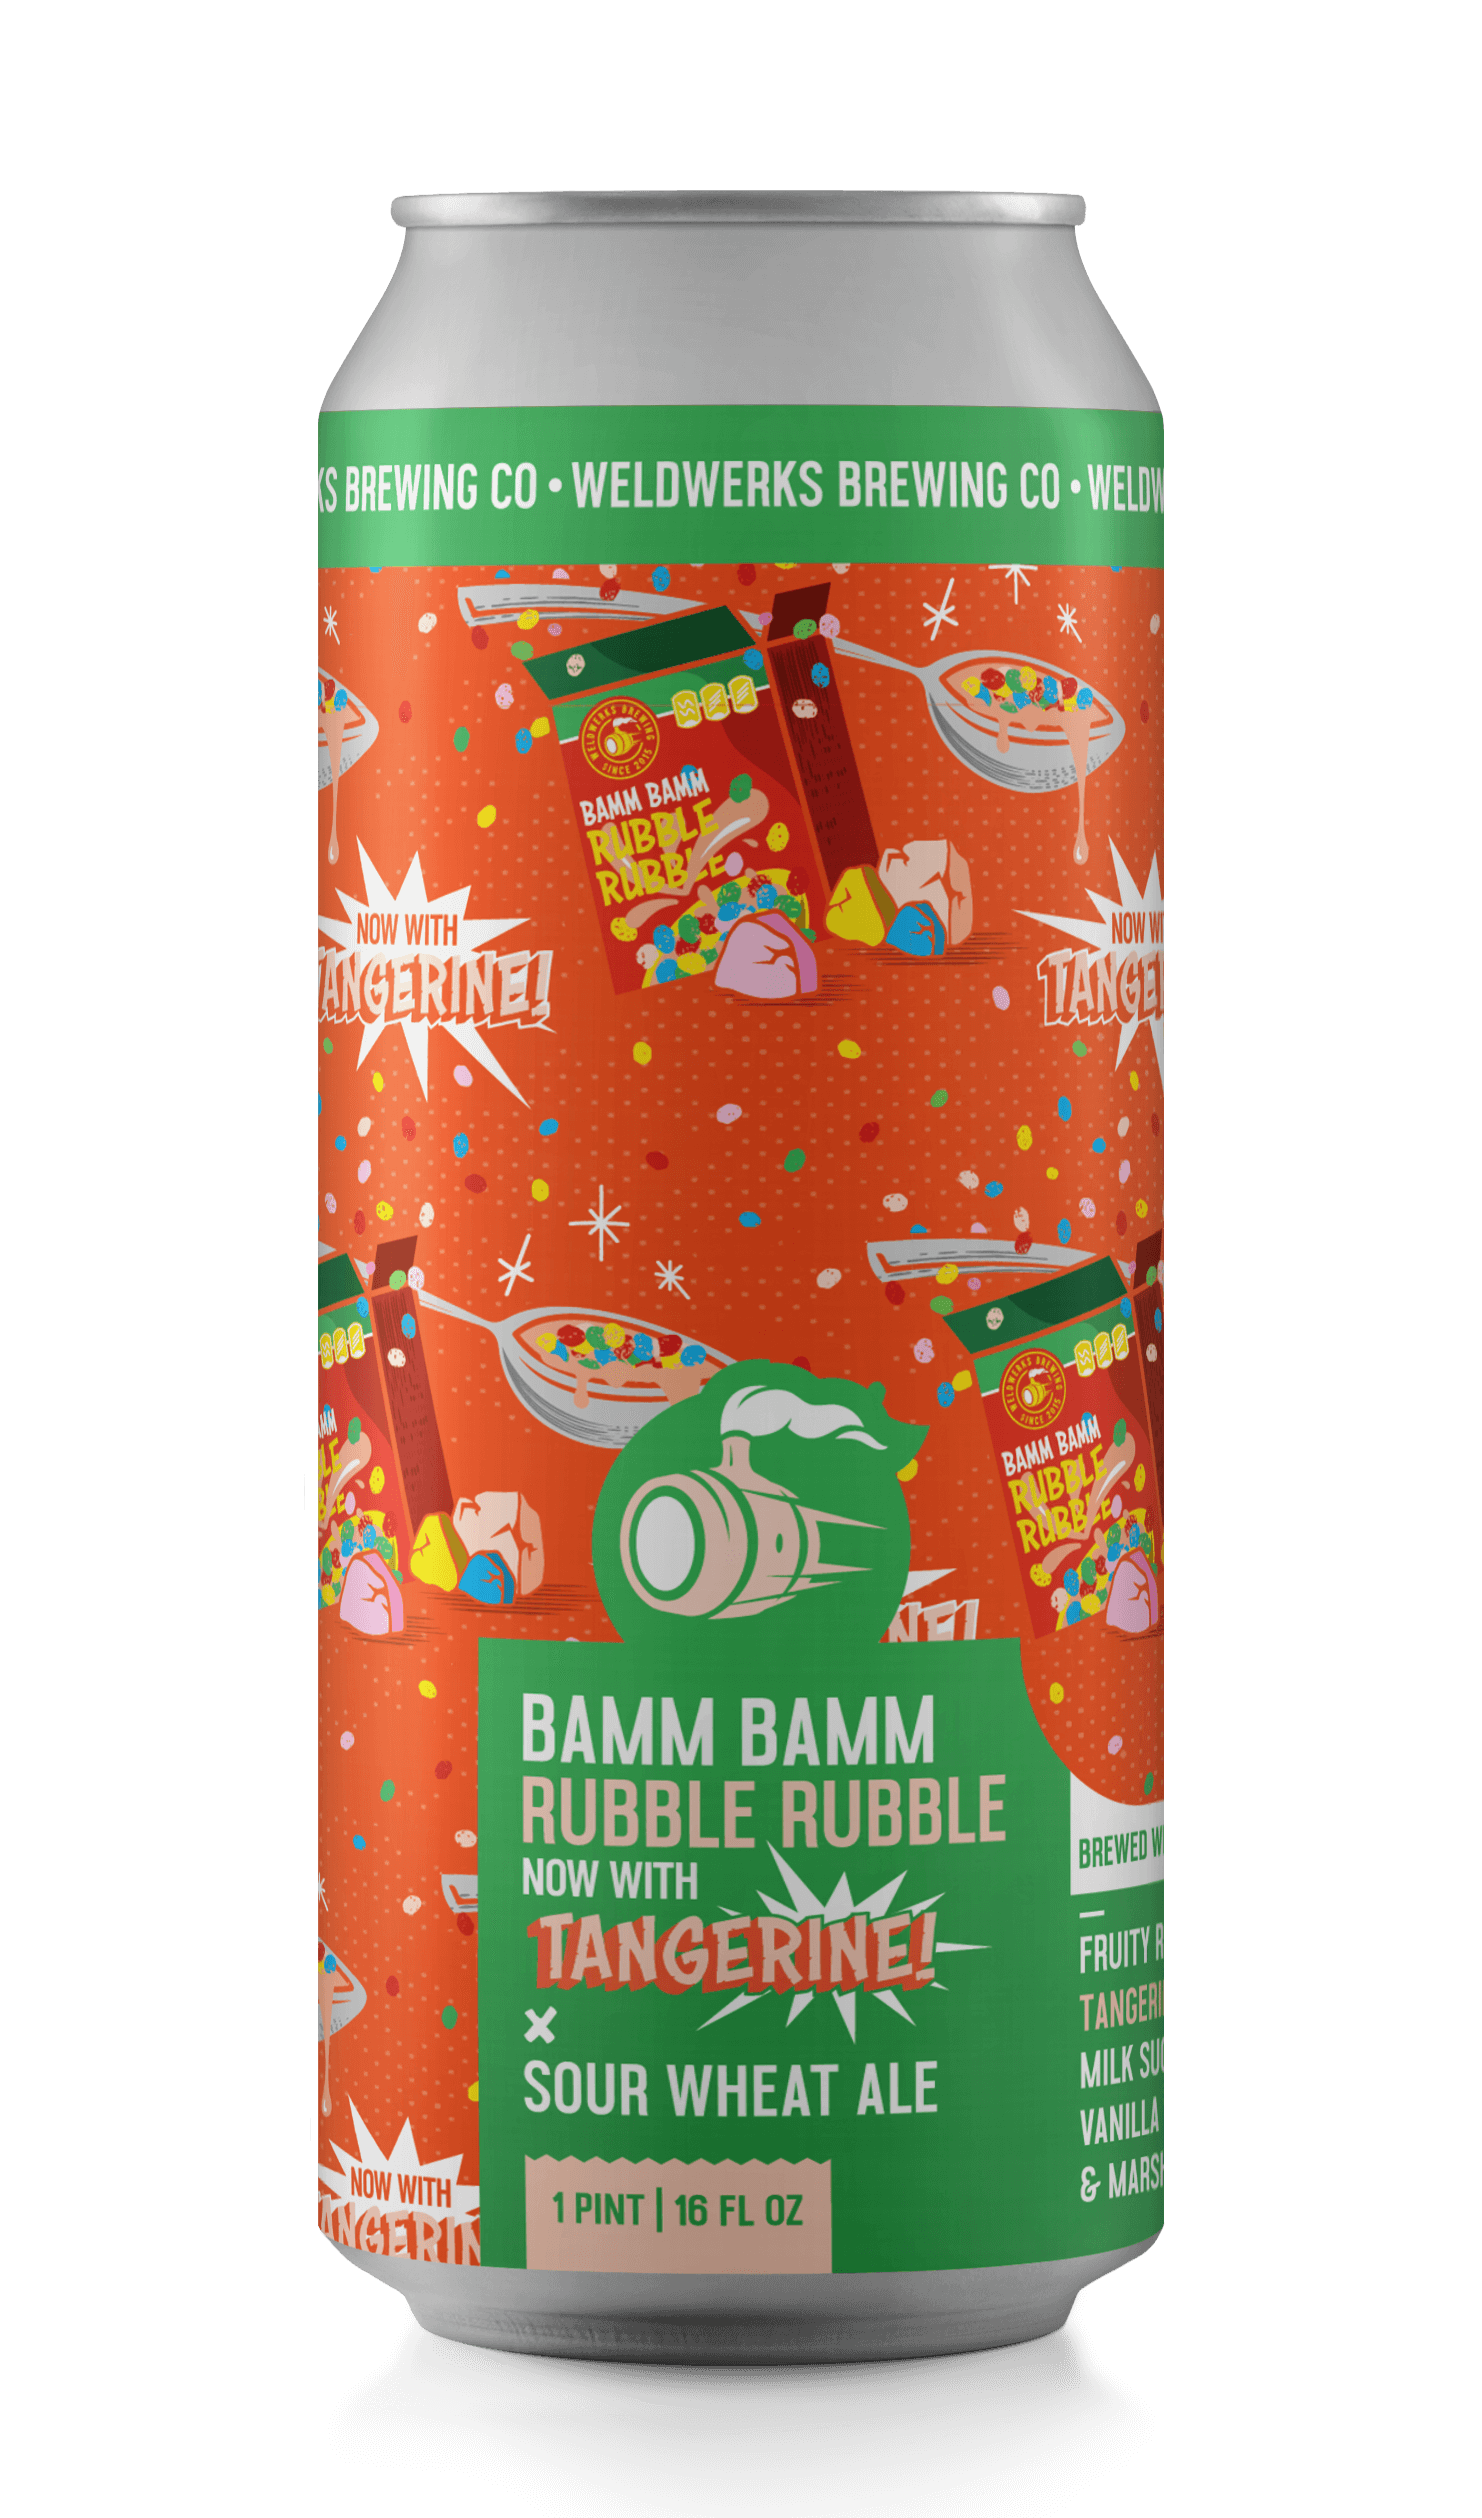 Bamm Bamm Rubble Rubble - NOW WITH TANGERINE!